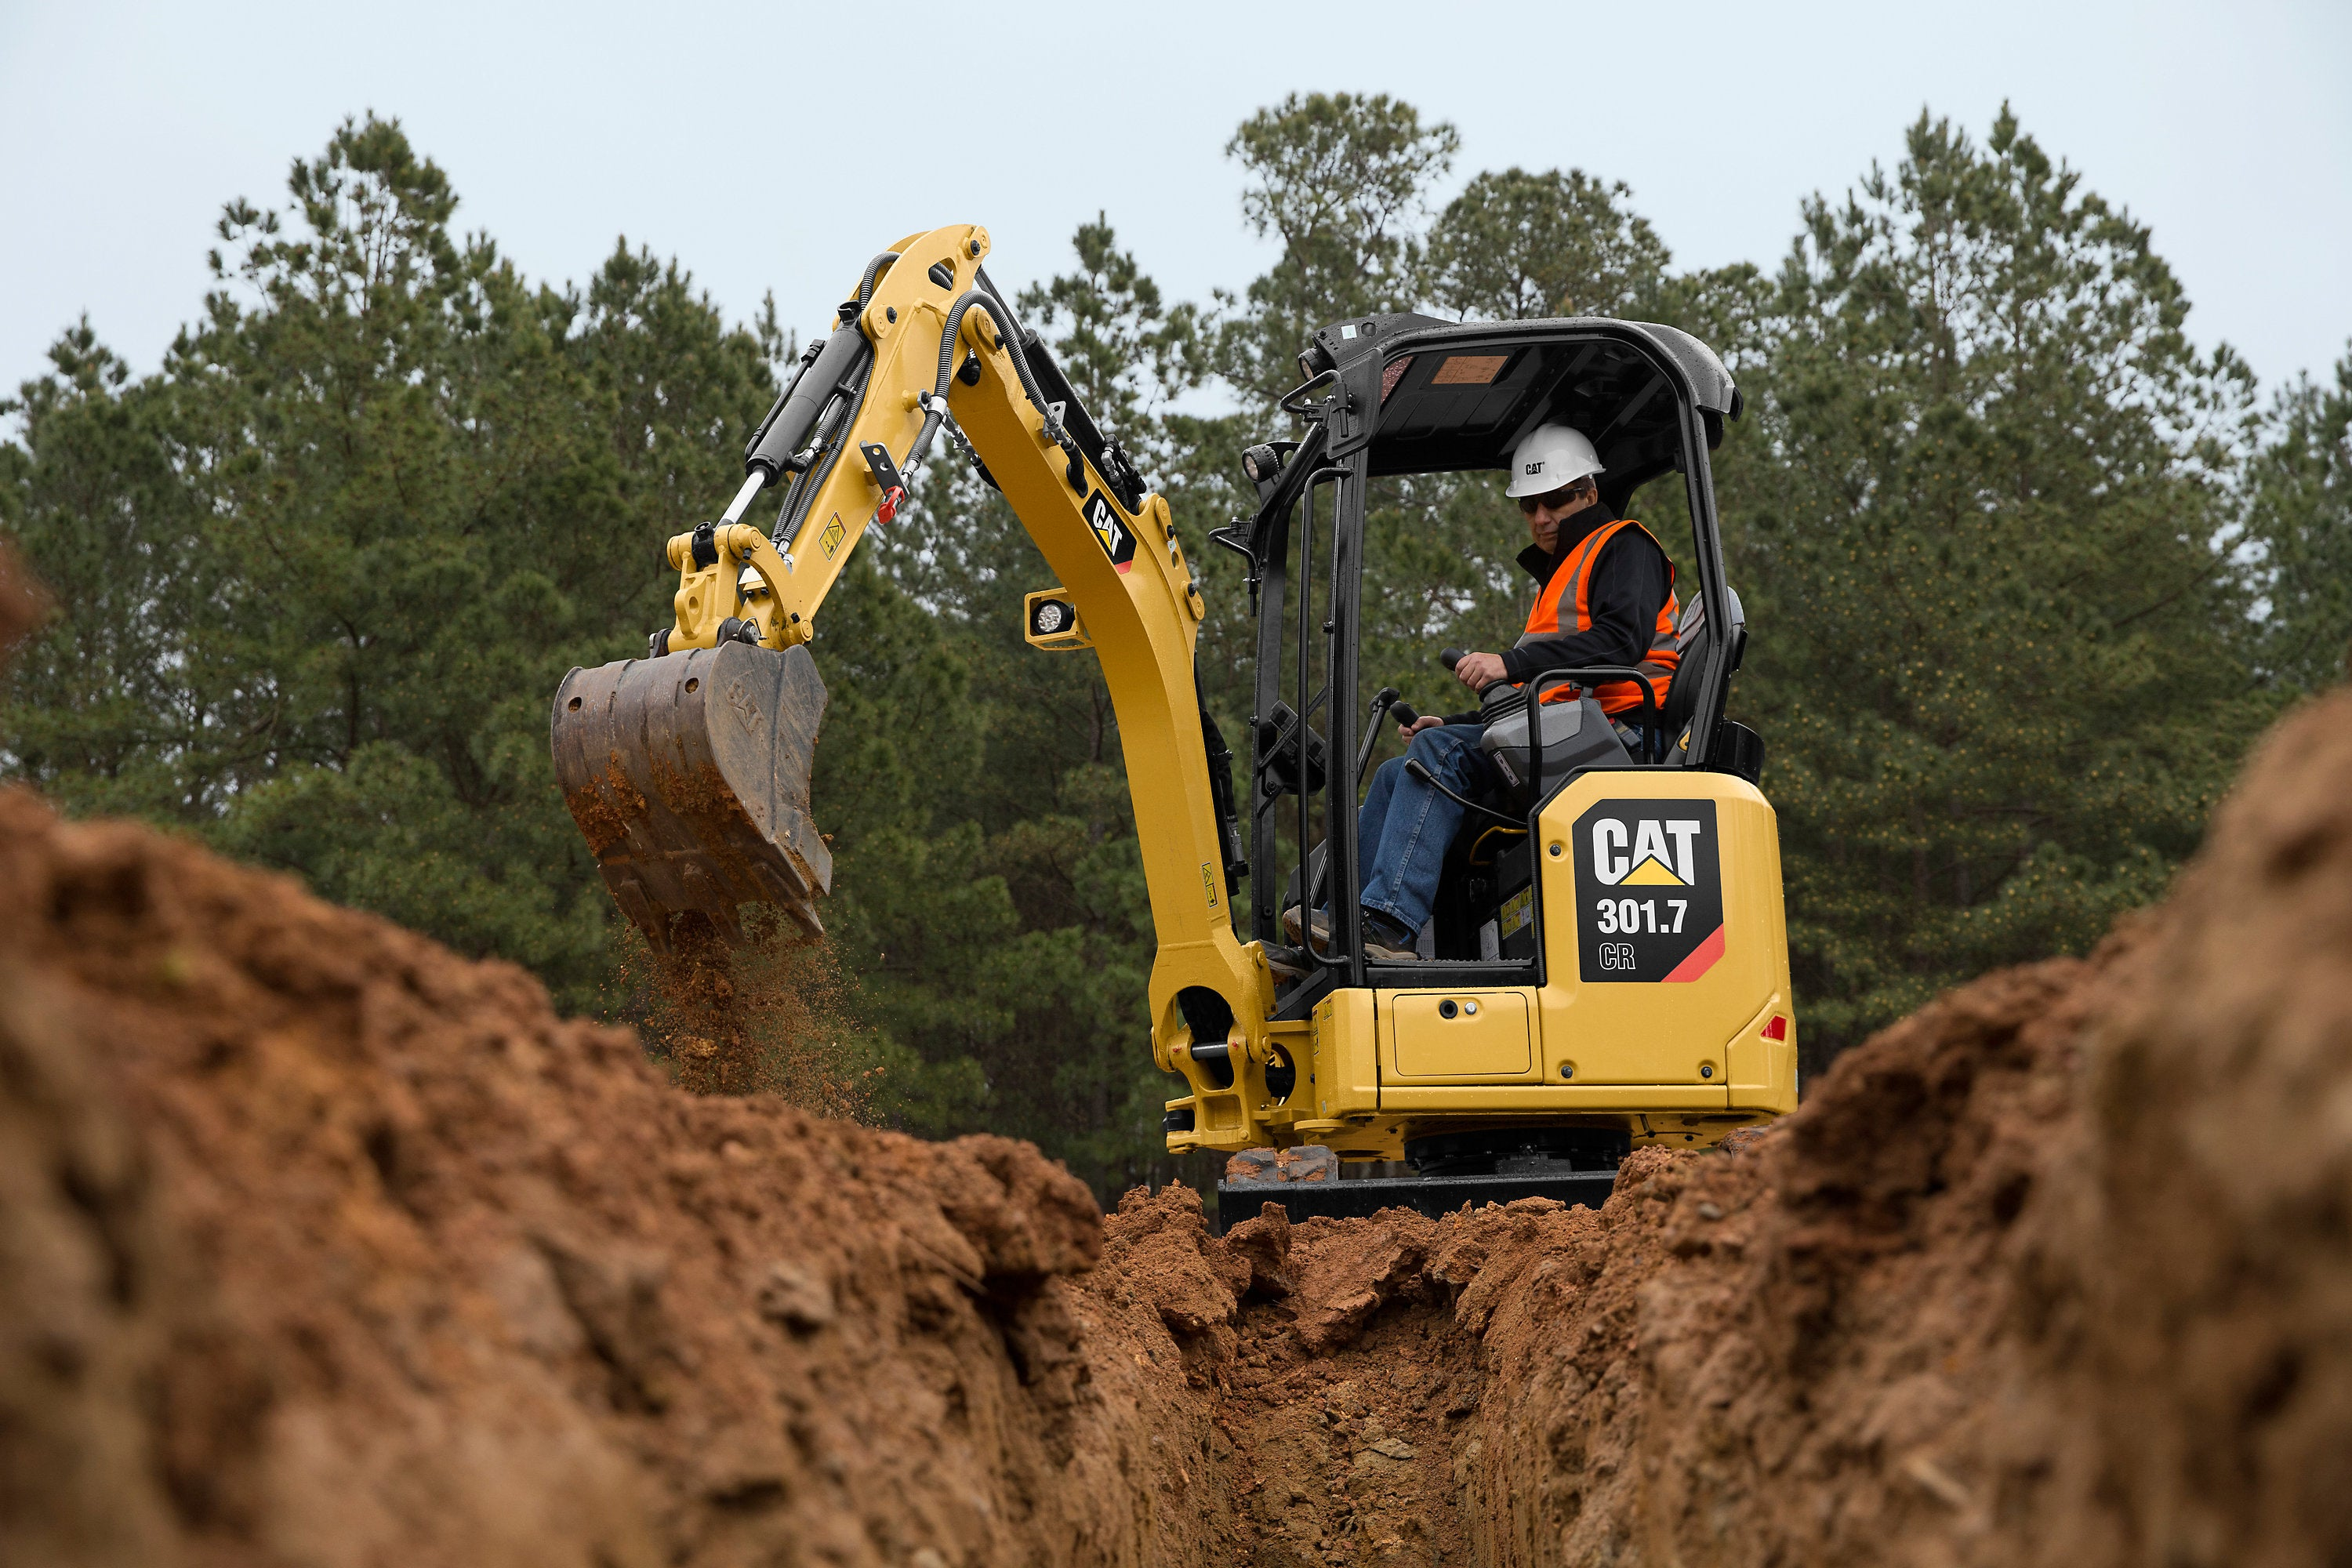 CAT 301.7 CR Mini Excavator Digger